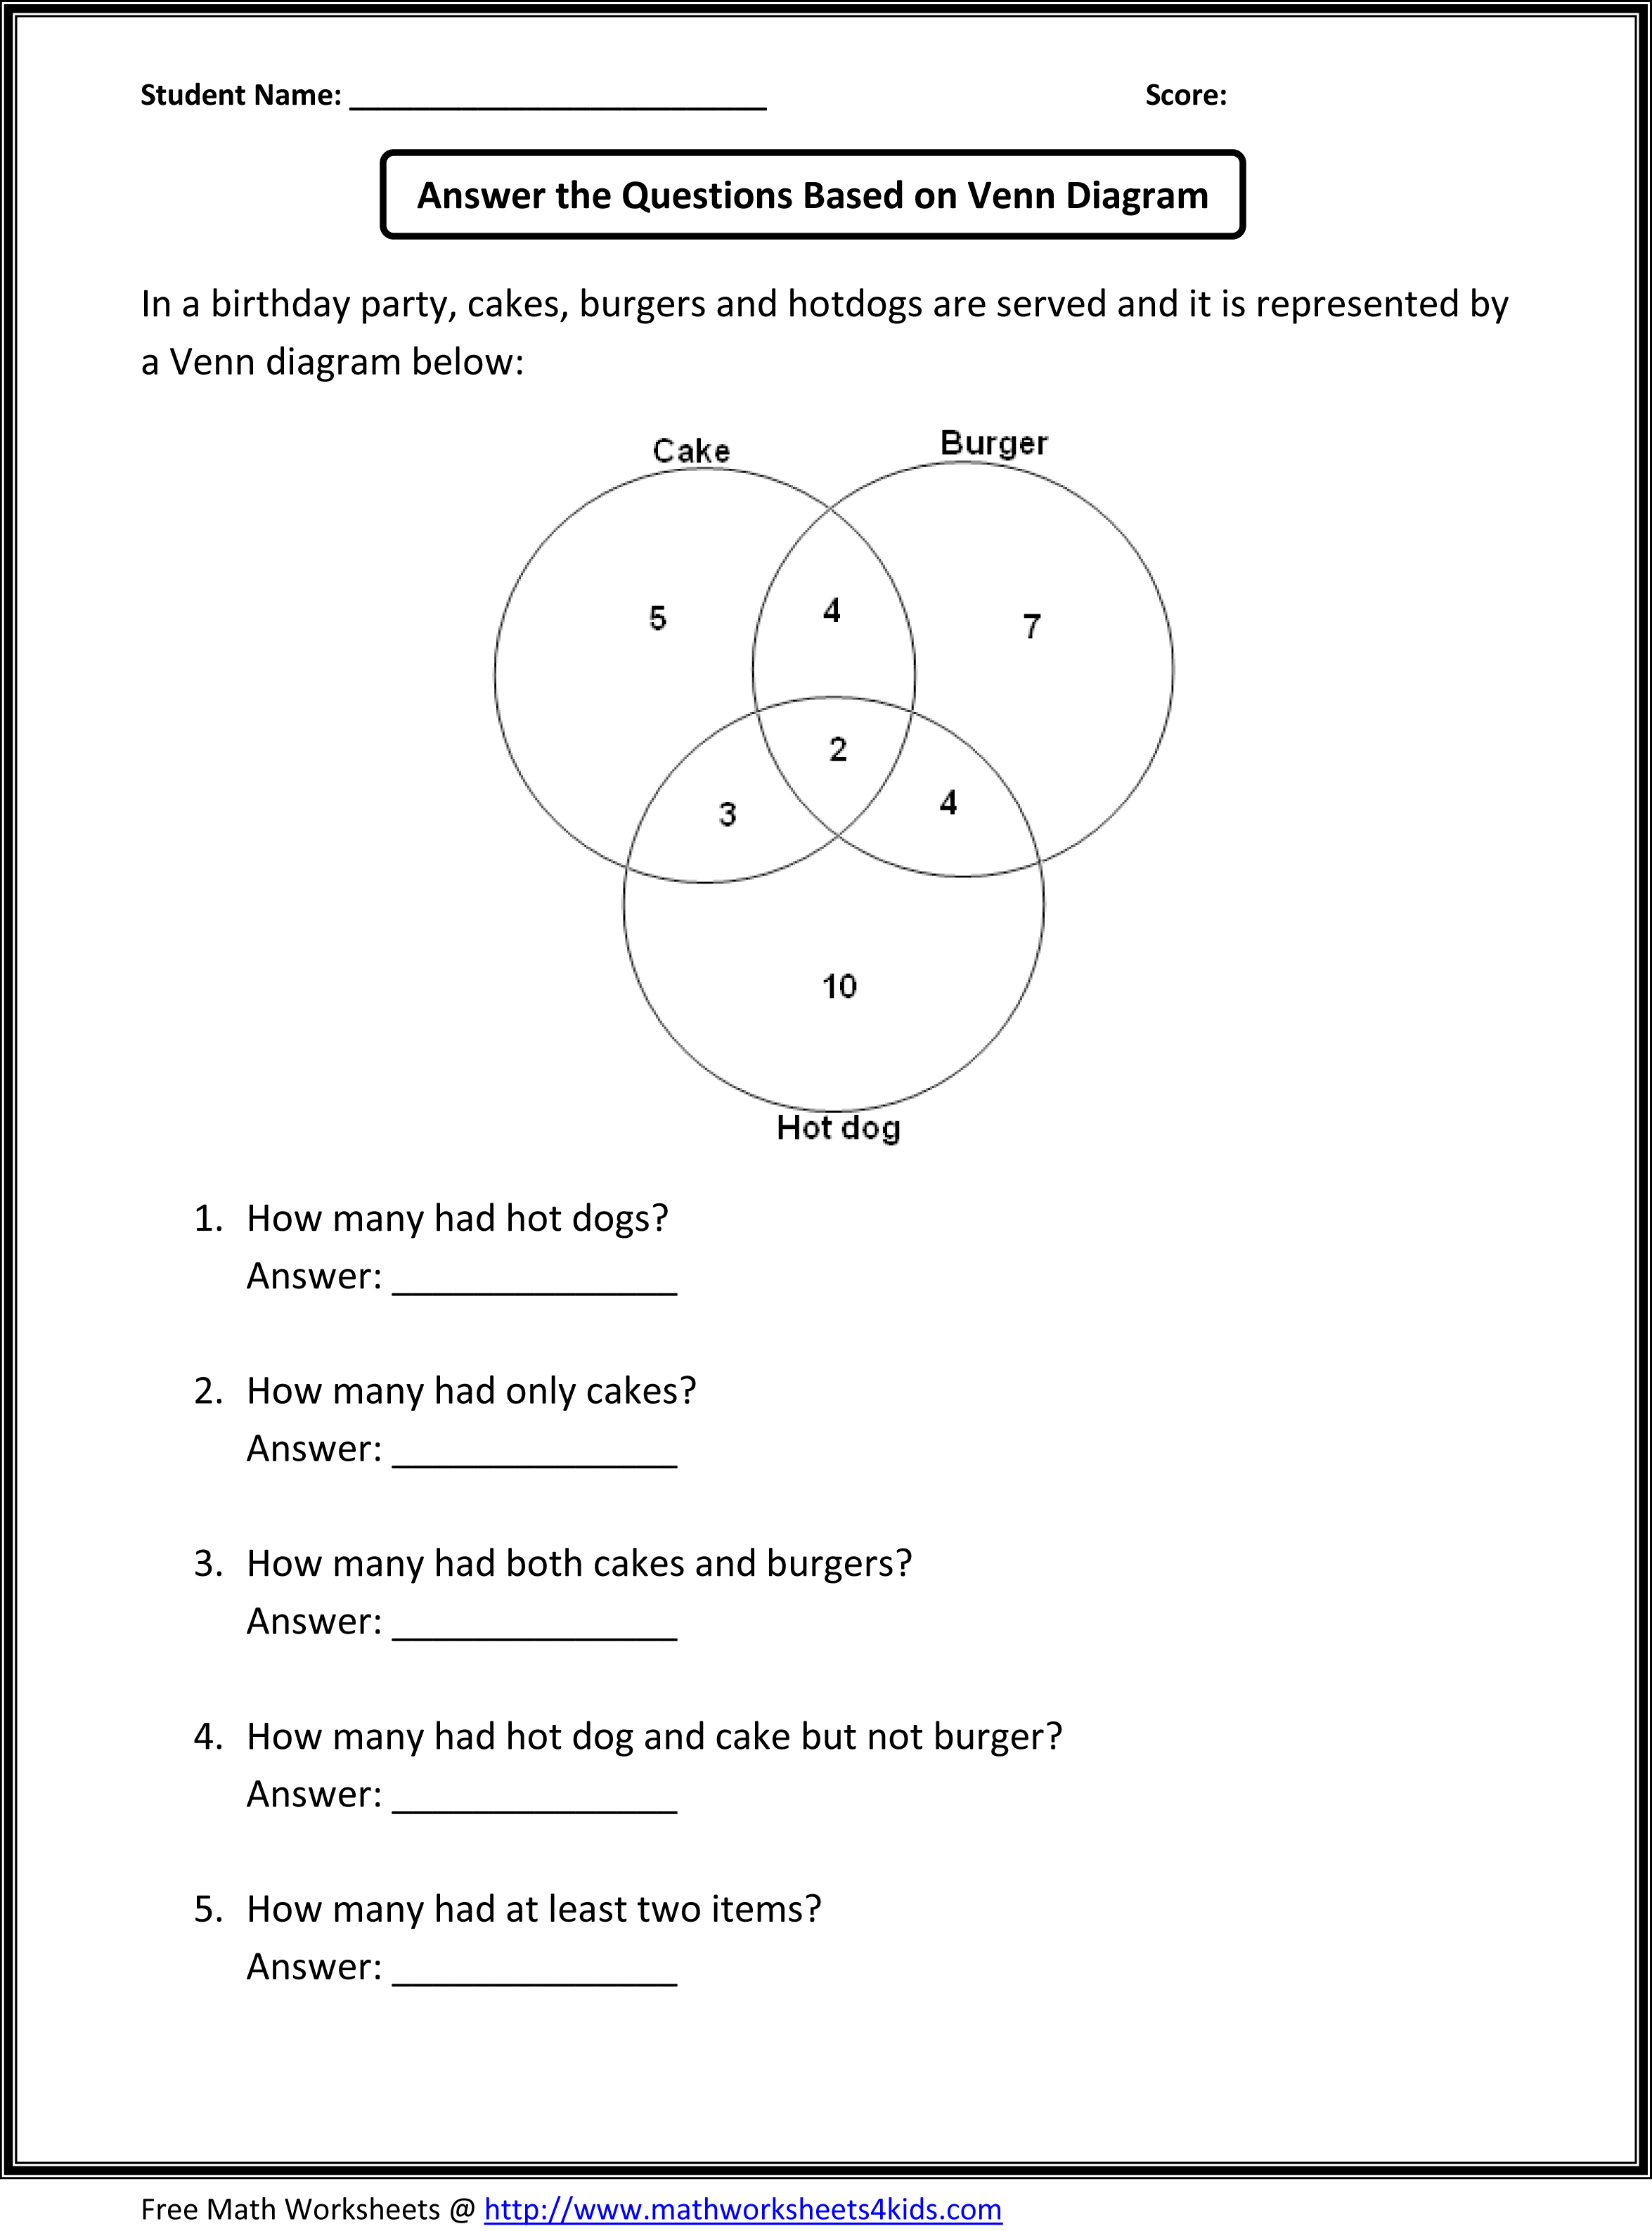 math worksheet : free 5th grade math problems worksheets  worksheets on study  : Math Worksheets For 5th Graders Printable